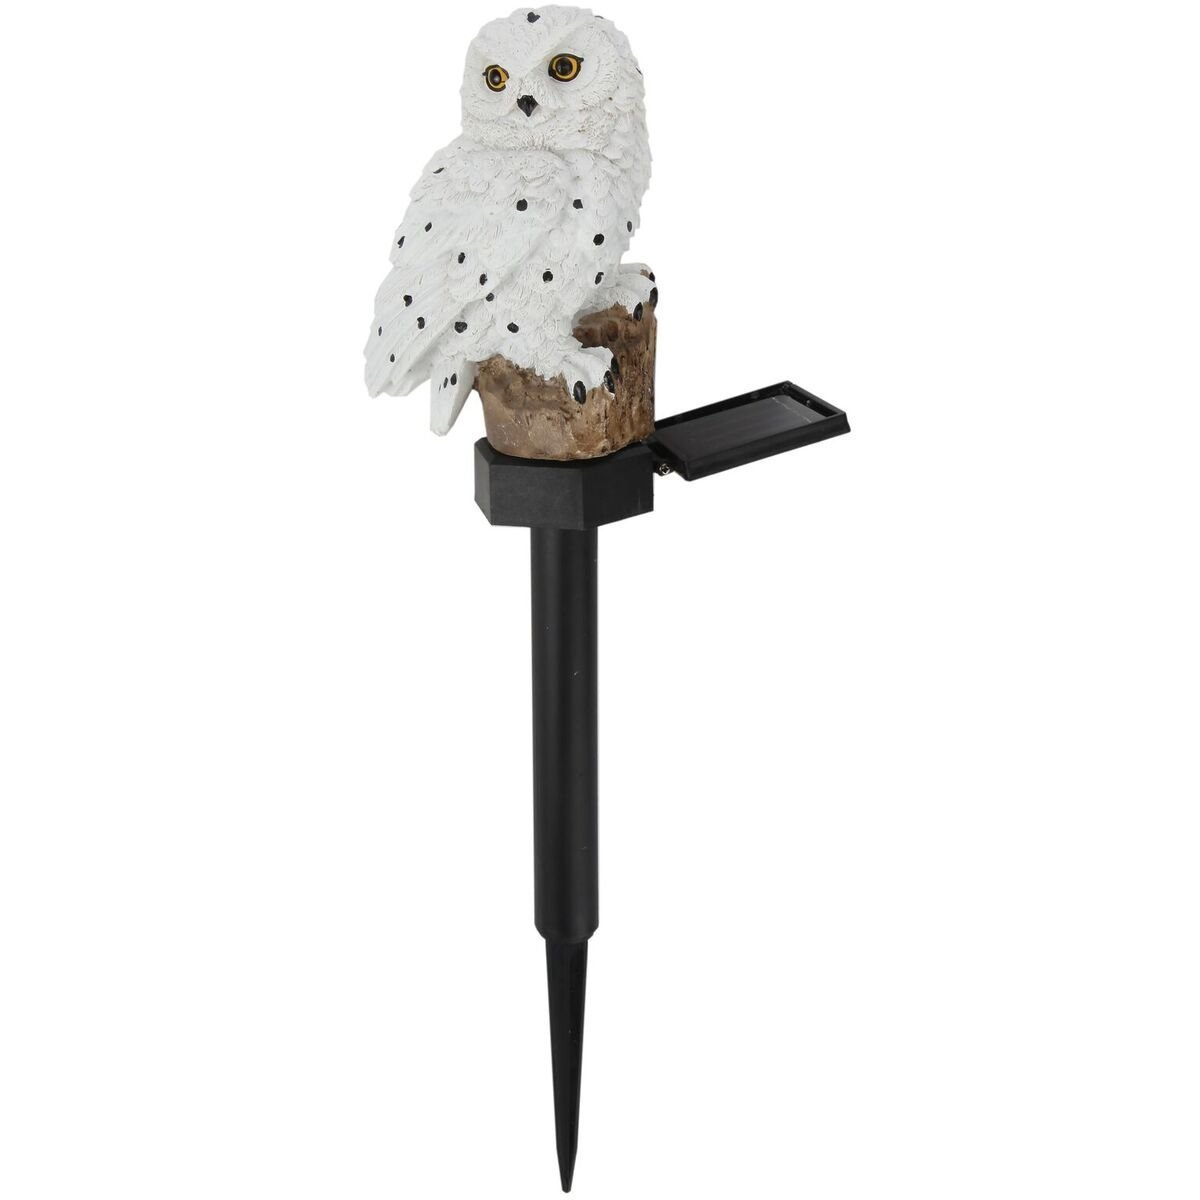 Trenton Gifts Weather Resistant Outdoor LED Solar Owl Light, Garden Stake | White by Trenton Gifts (Image #1)